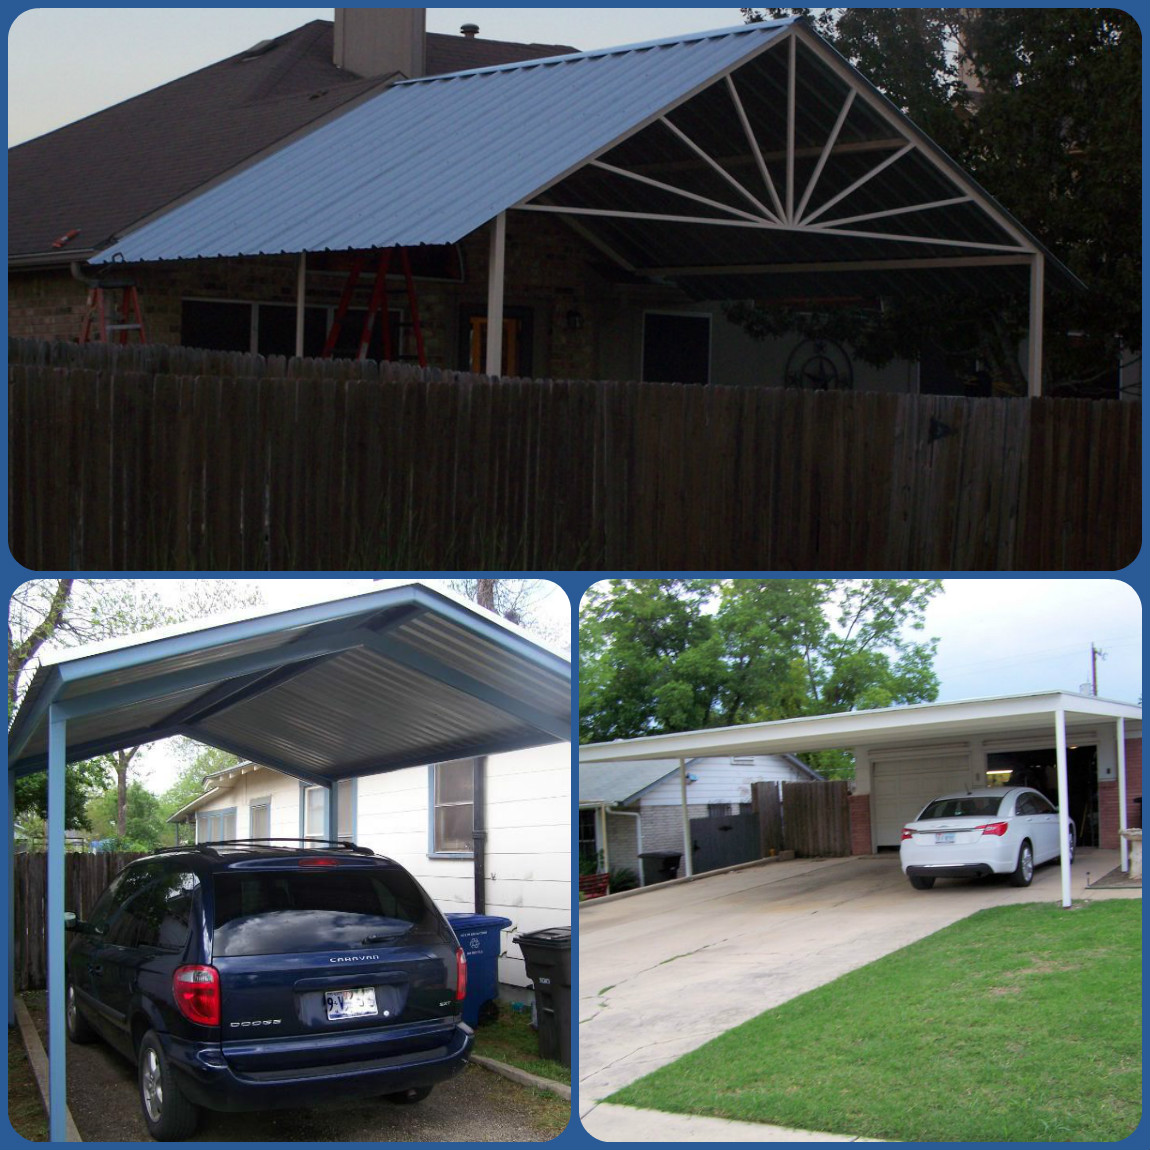 Custom Metal Carports : Carport metal awning custom sized patio covers